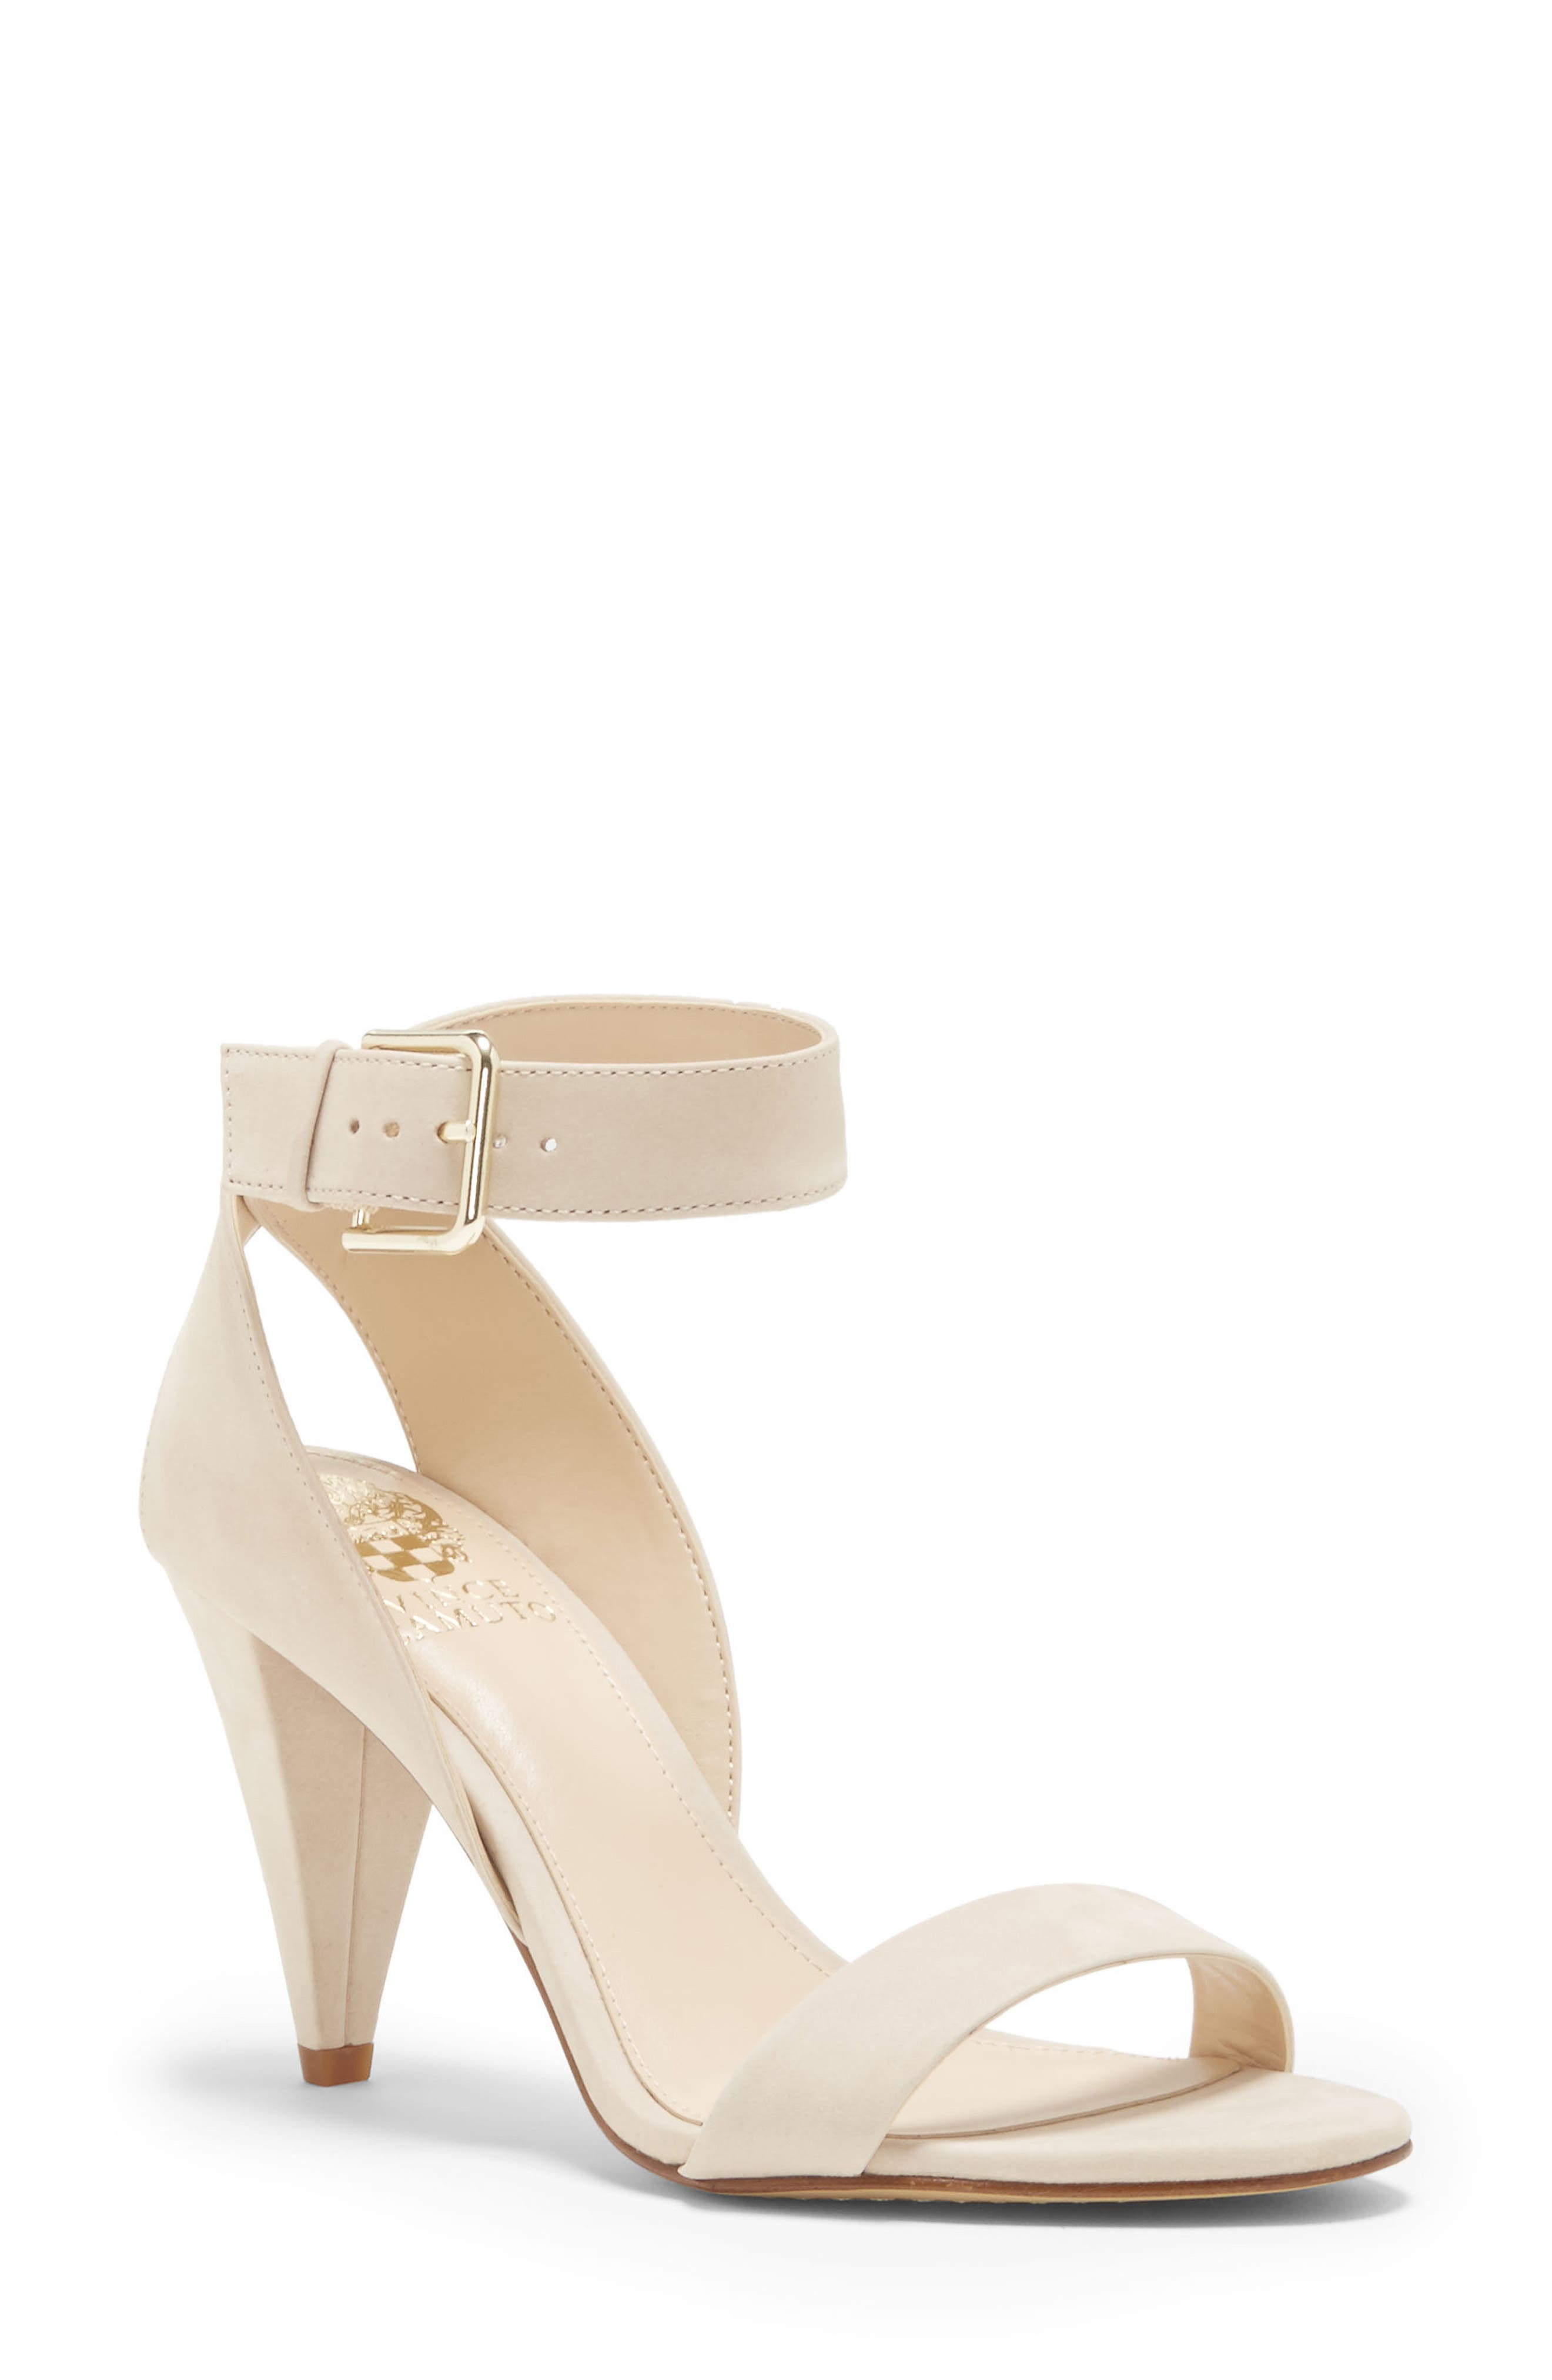 Vince Camuto Caitriona Sandal